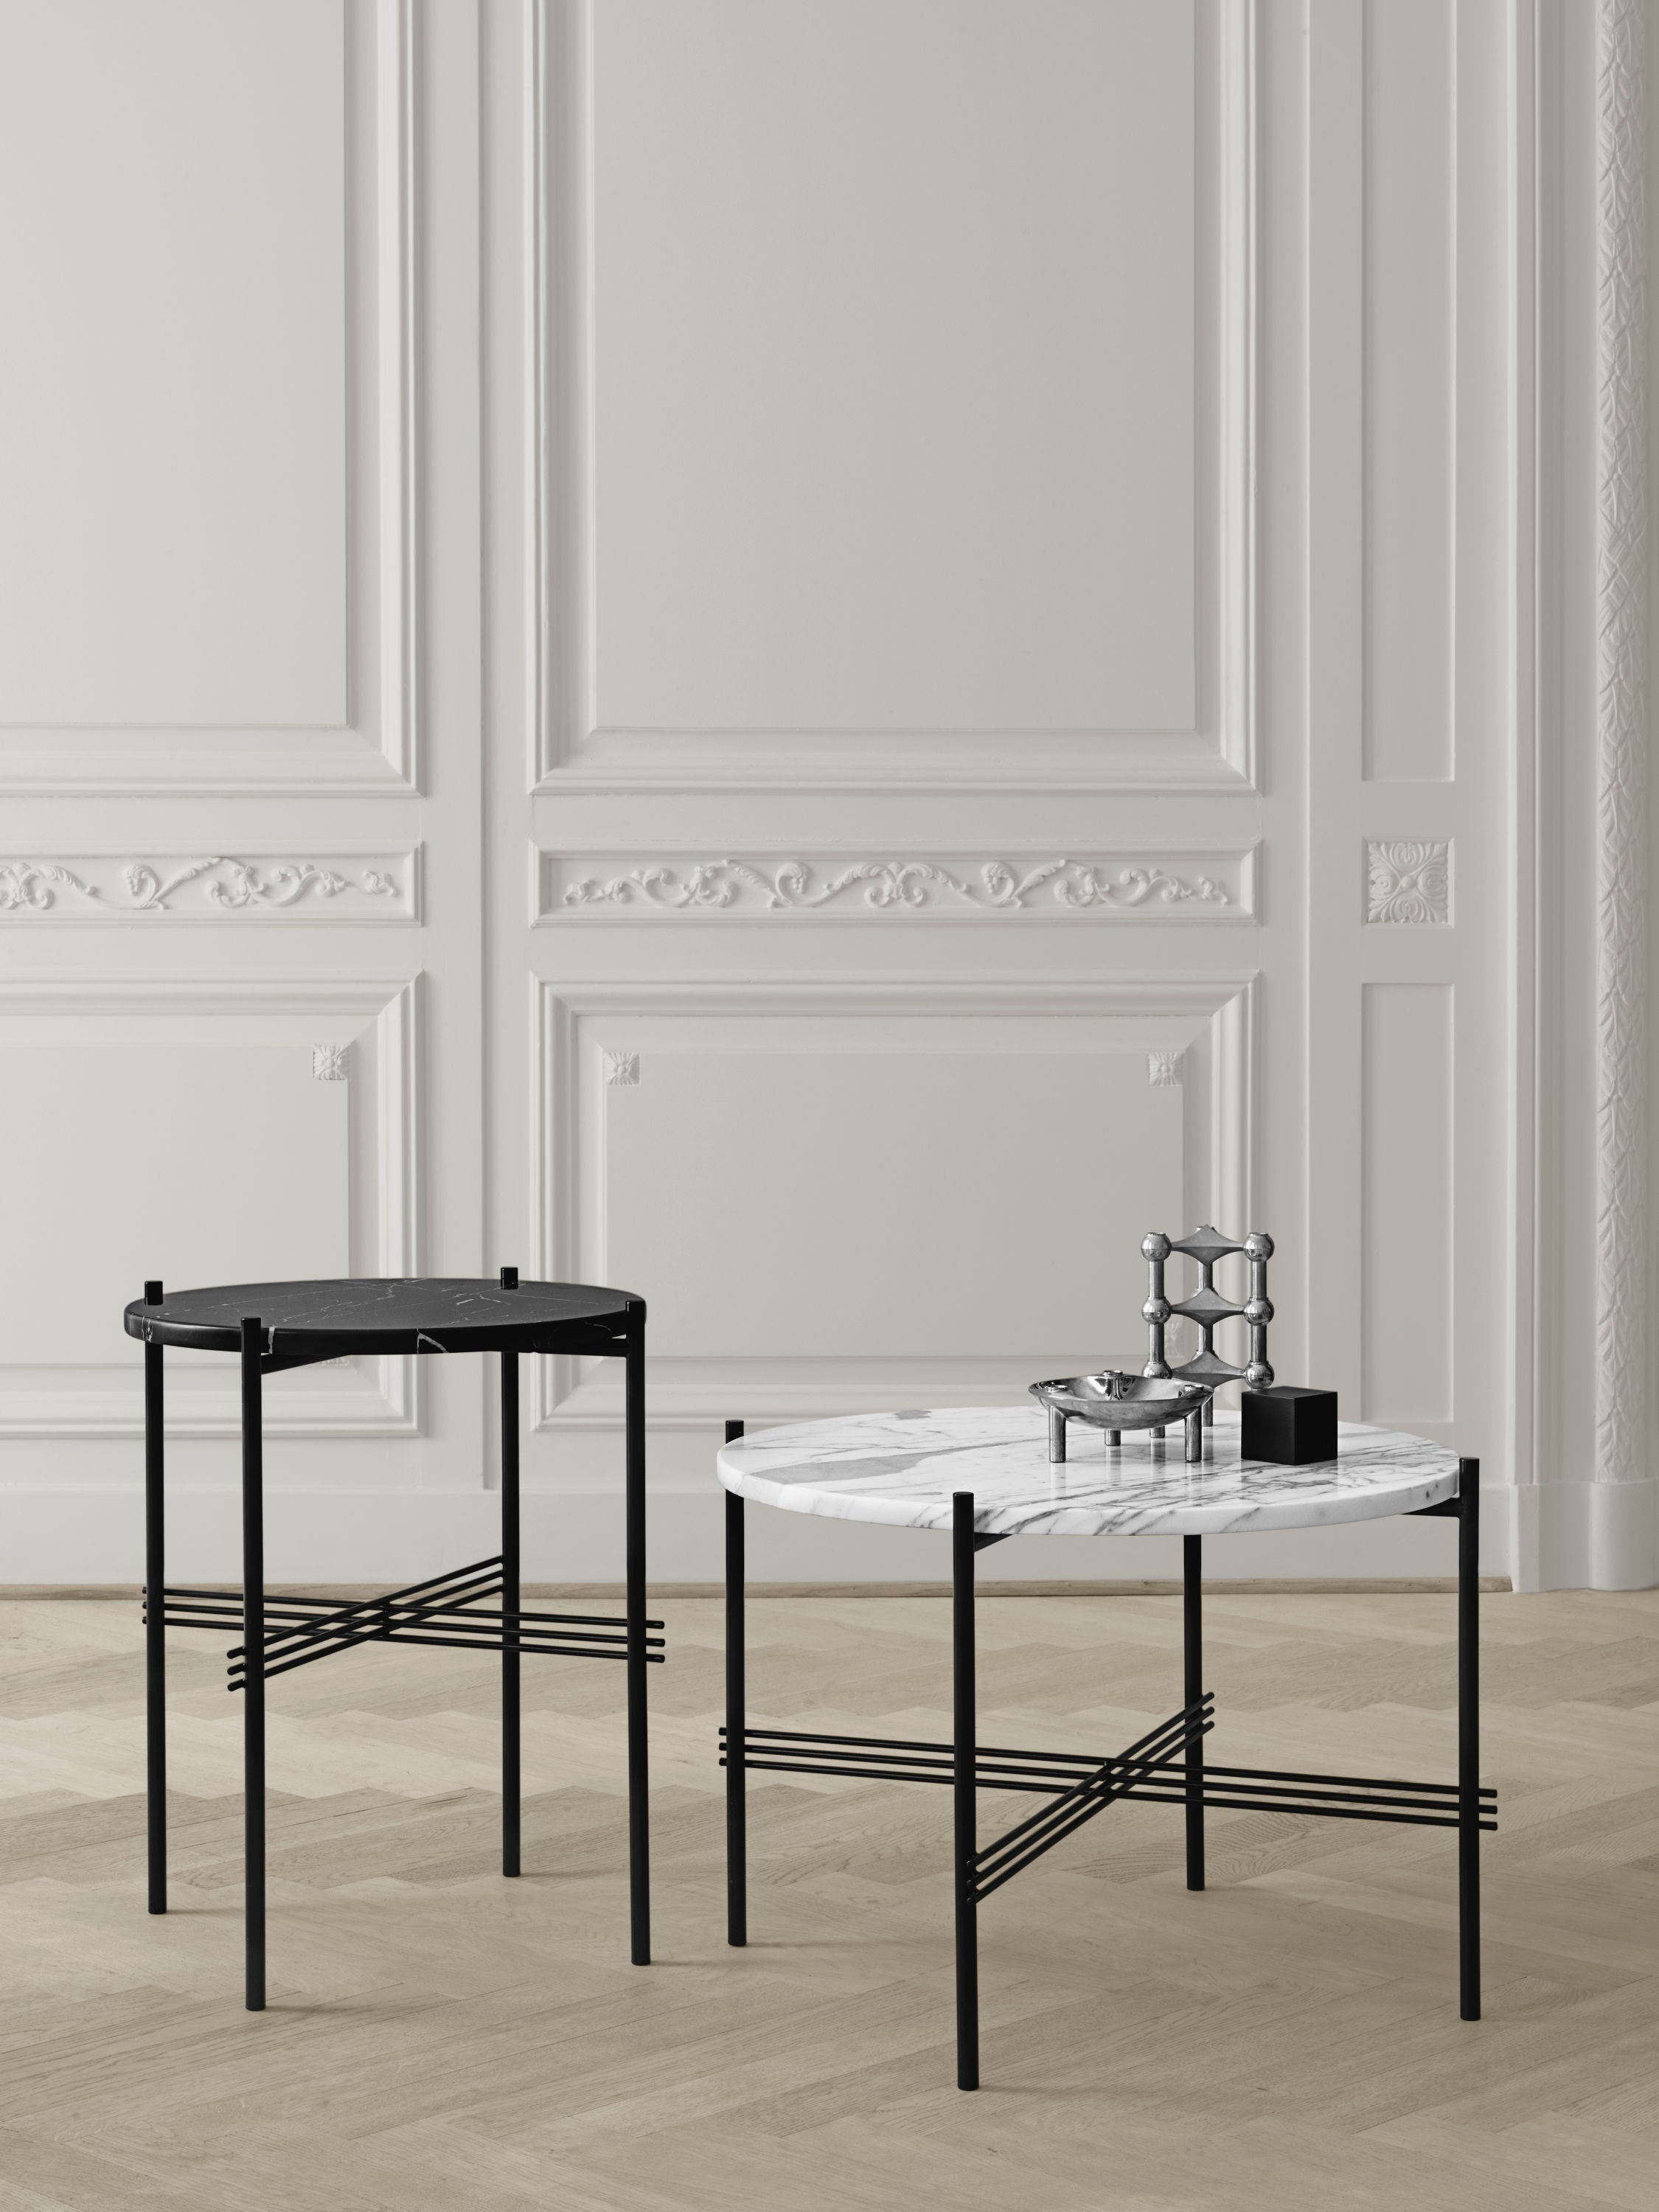 TS Coffee Table - Dia 55 Black base, glass grey blue top fra GUBI